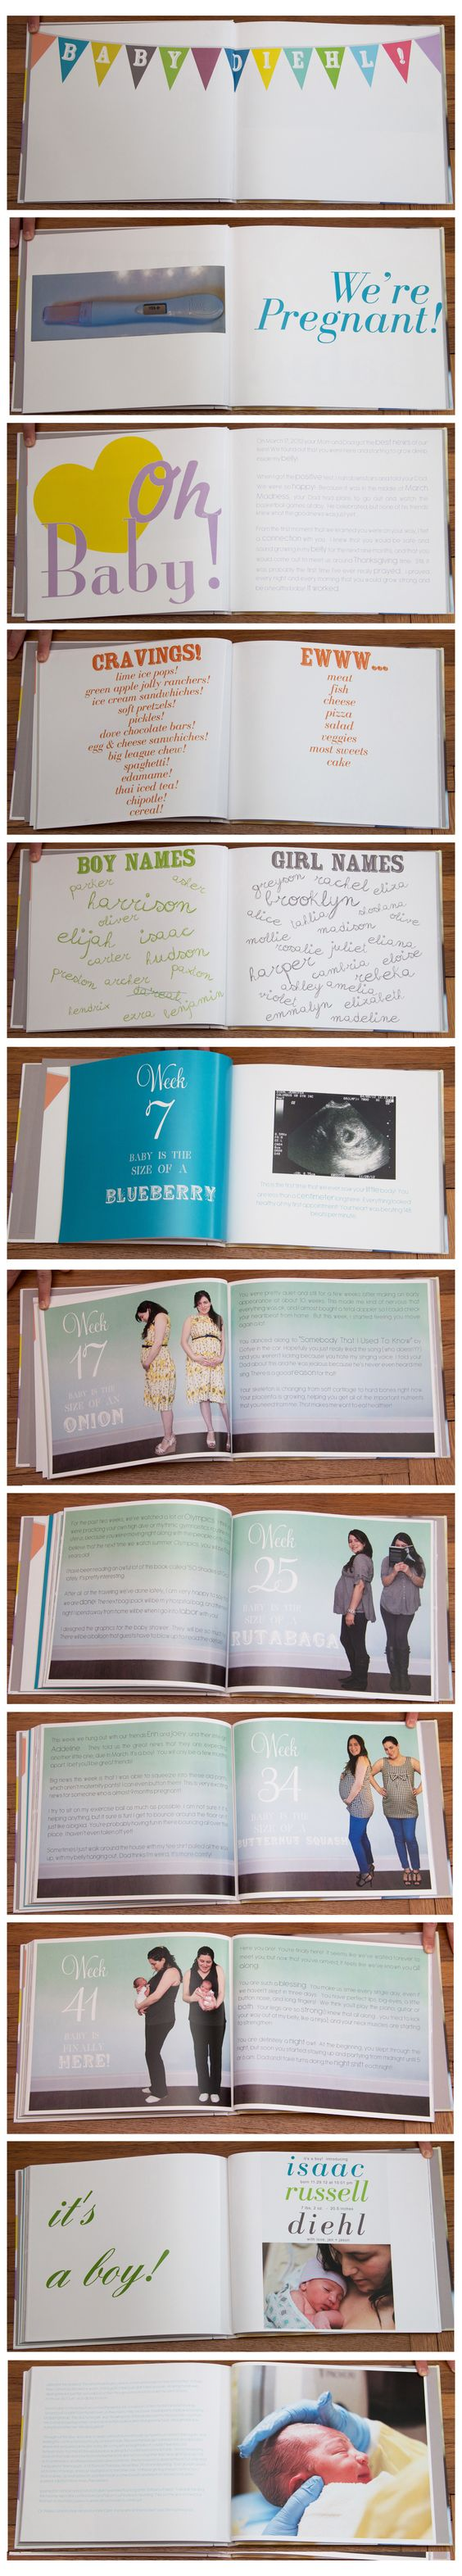 DIY baby book with maternity pictures and weekly belly shots.  For 41 weeks, we set up the tripod in the guest bedroom and took front and side pics of my growing belly. I added graphics to announce the pregnancy, show our baby name choices as we narrowed them down, describe my pregnancy cravings and I included my obsession: pennant flag bunting.  It's a boy!  More on the blog.